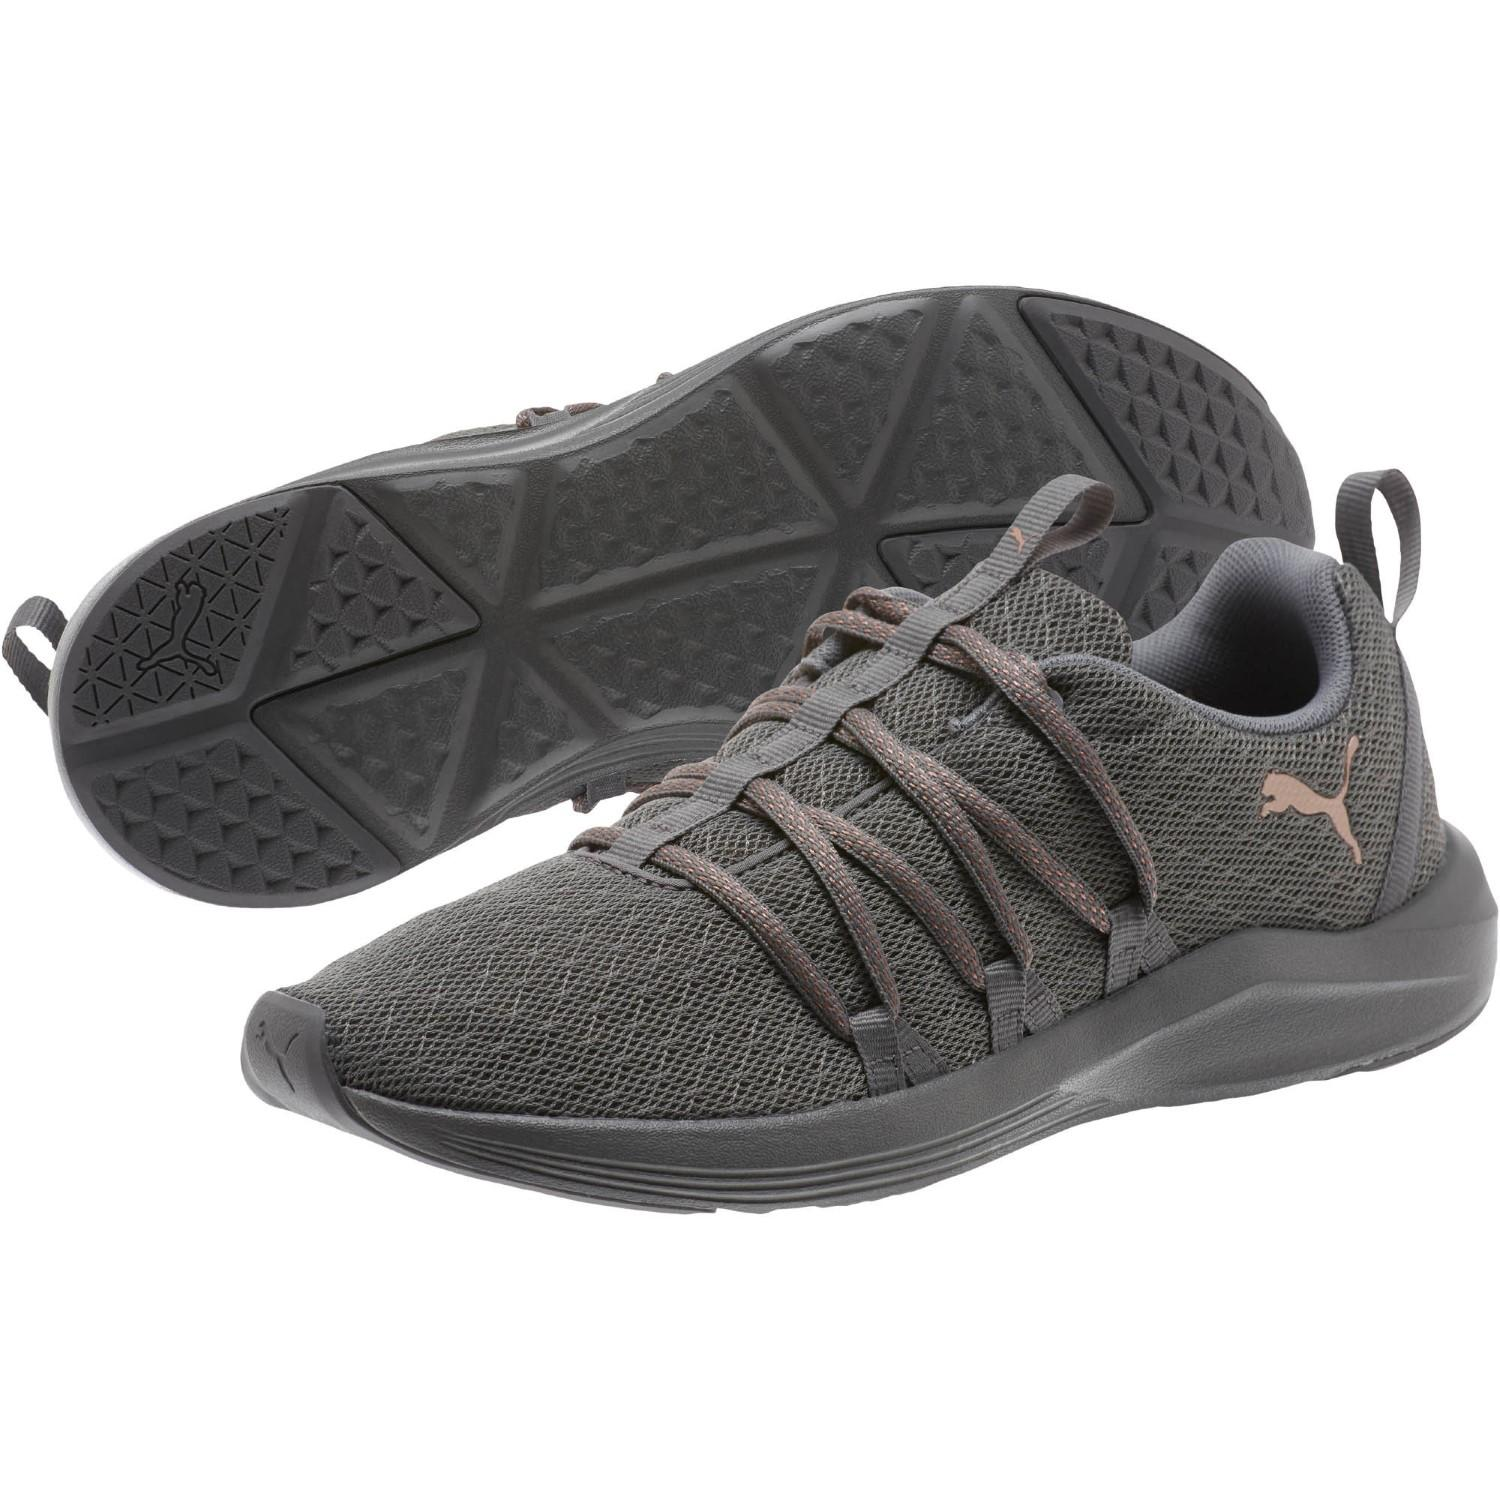 c3a1fdf2fd4 PUMA. Women s Gray Prowl Alt Knit Mesh Training Sneakers From Finish Line